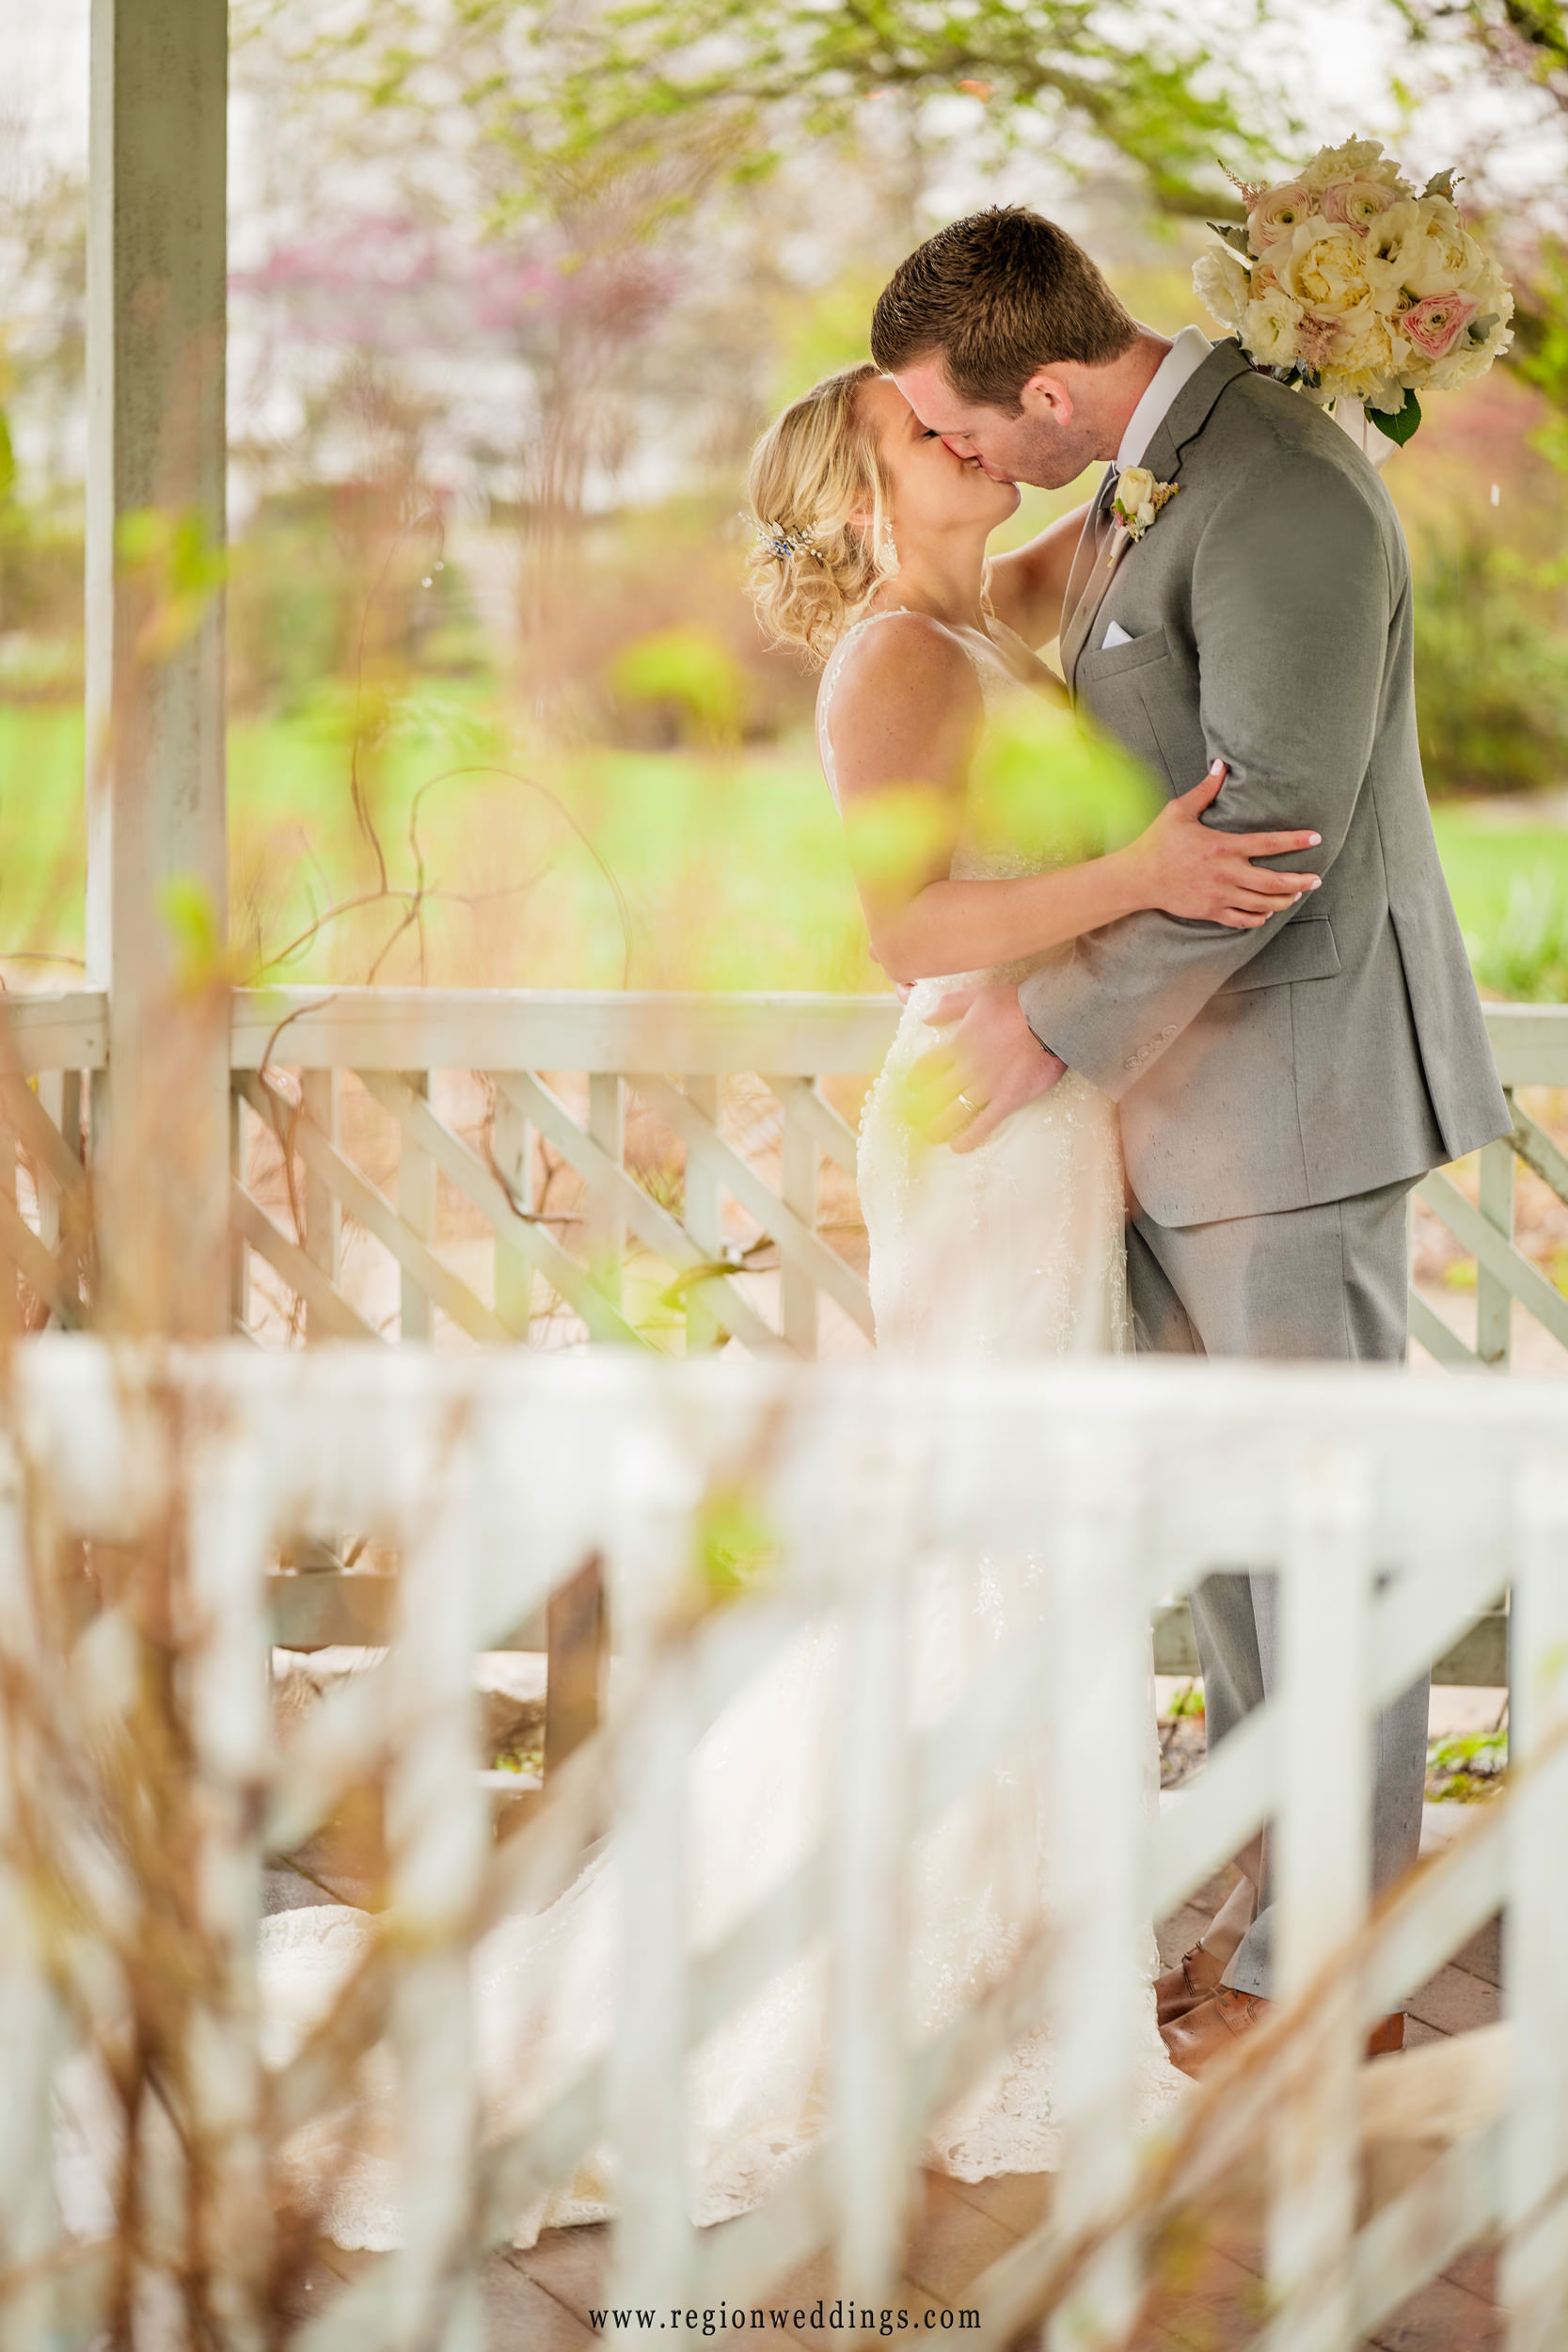 Kissing underneath the gazebo at Ogden Garden.